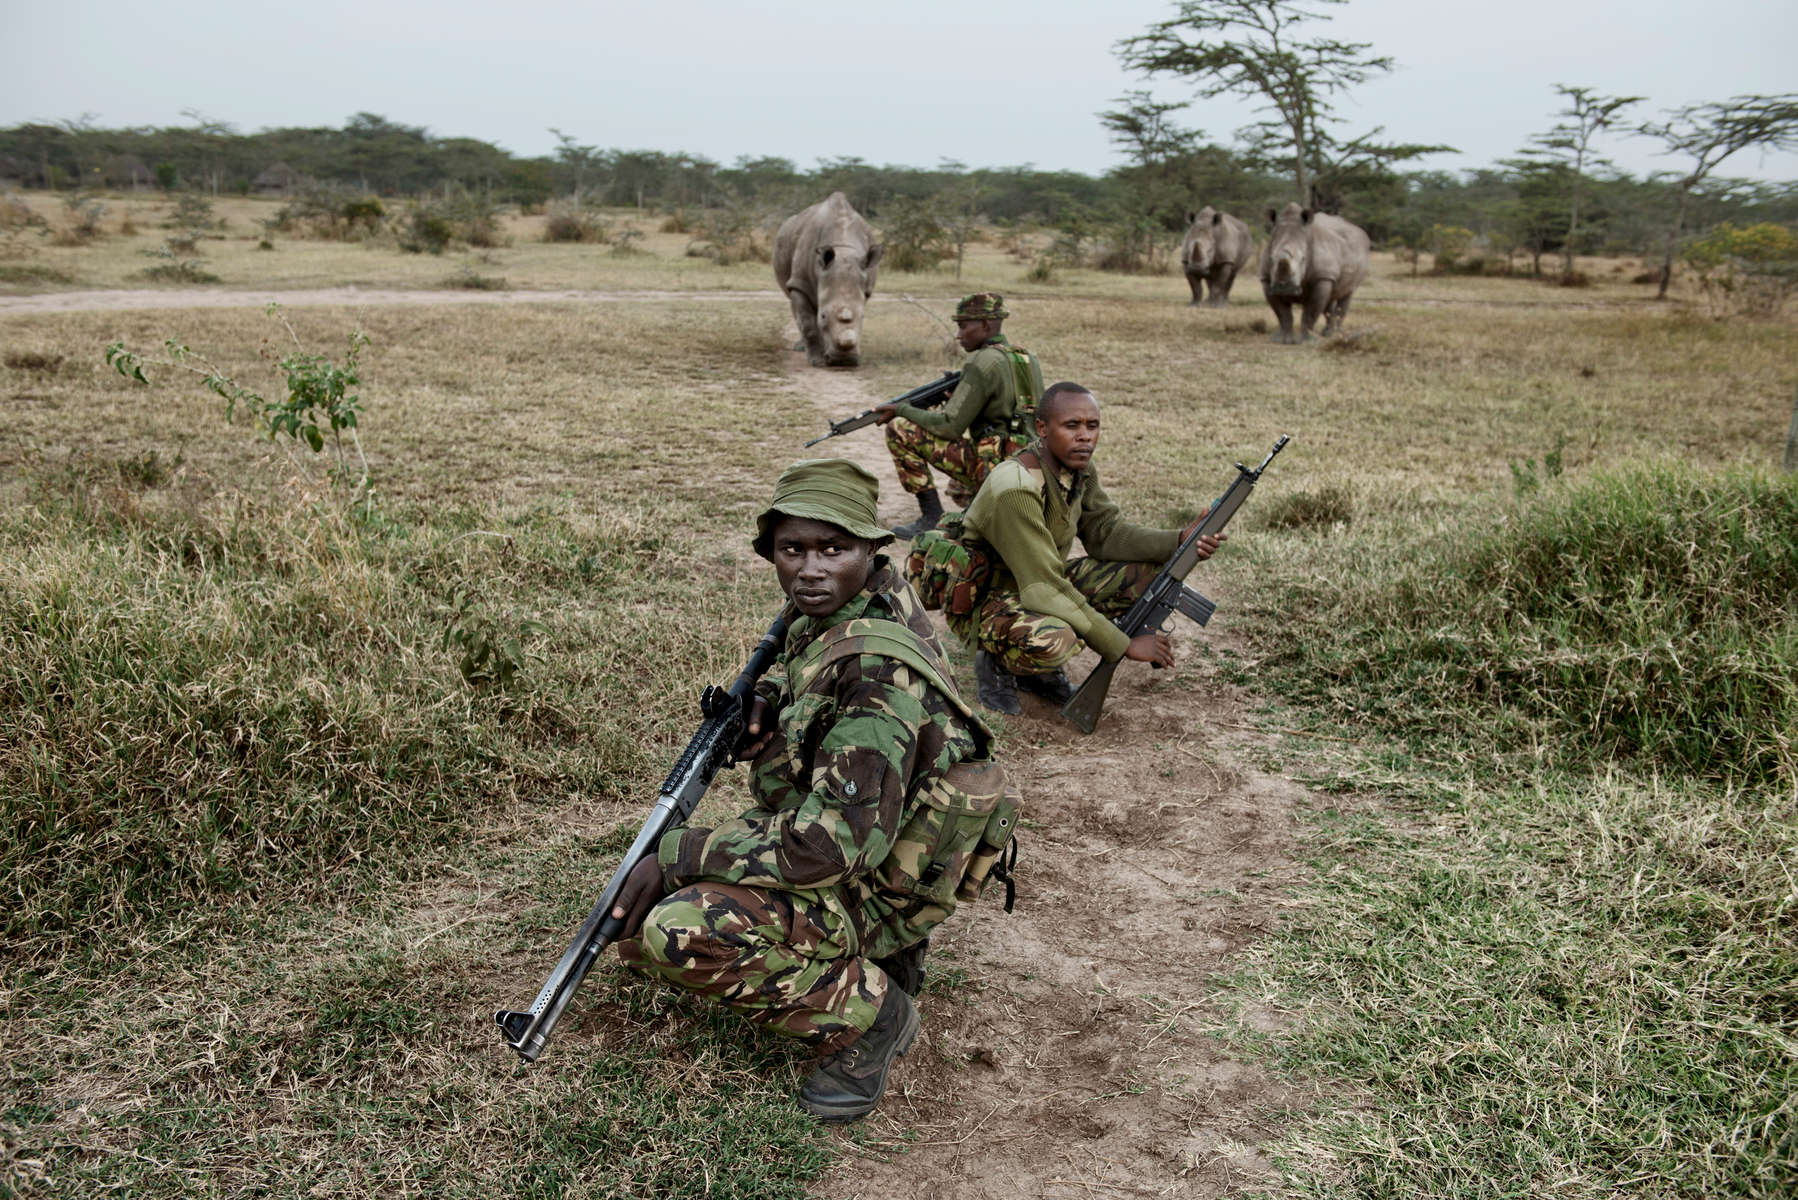 Three of the last seven Northern White rhinos left in the world follow the Kenya Police Reserve who protect them, as they head out on their daily evening patrol.